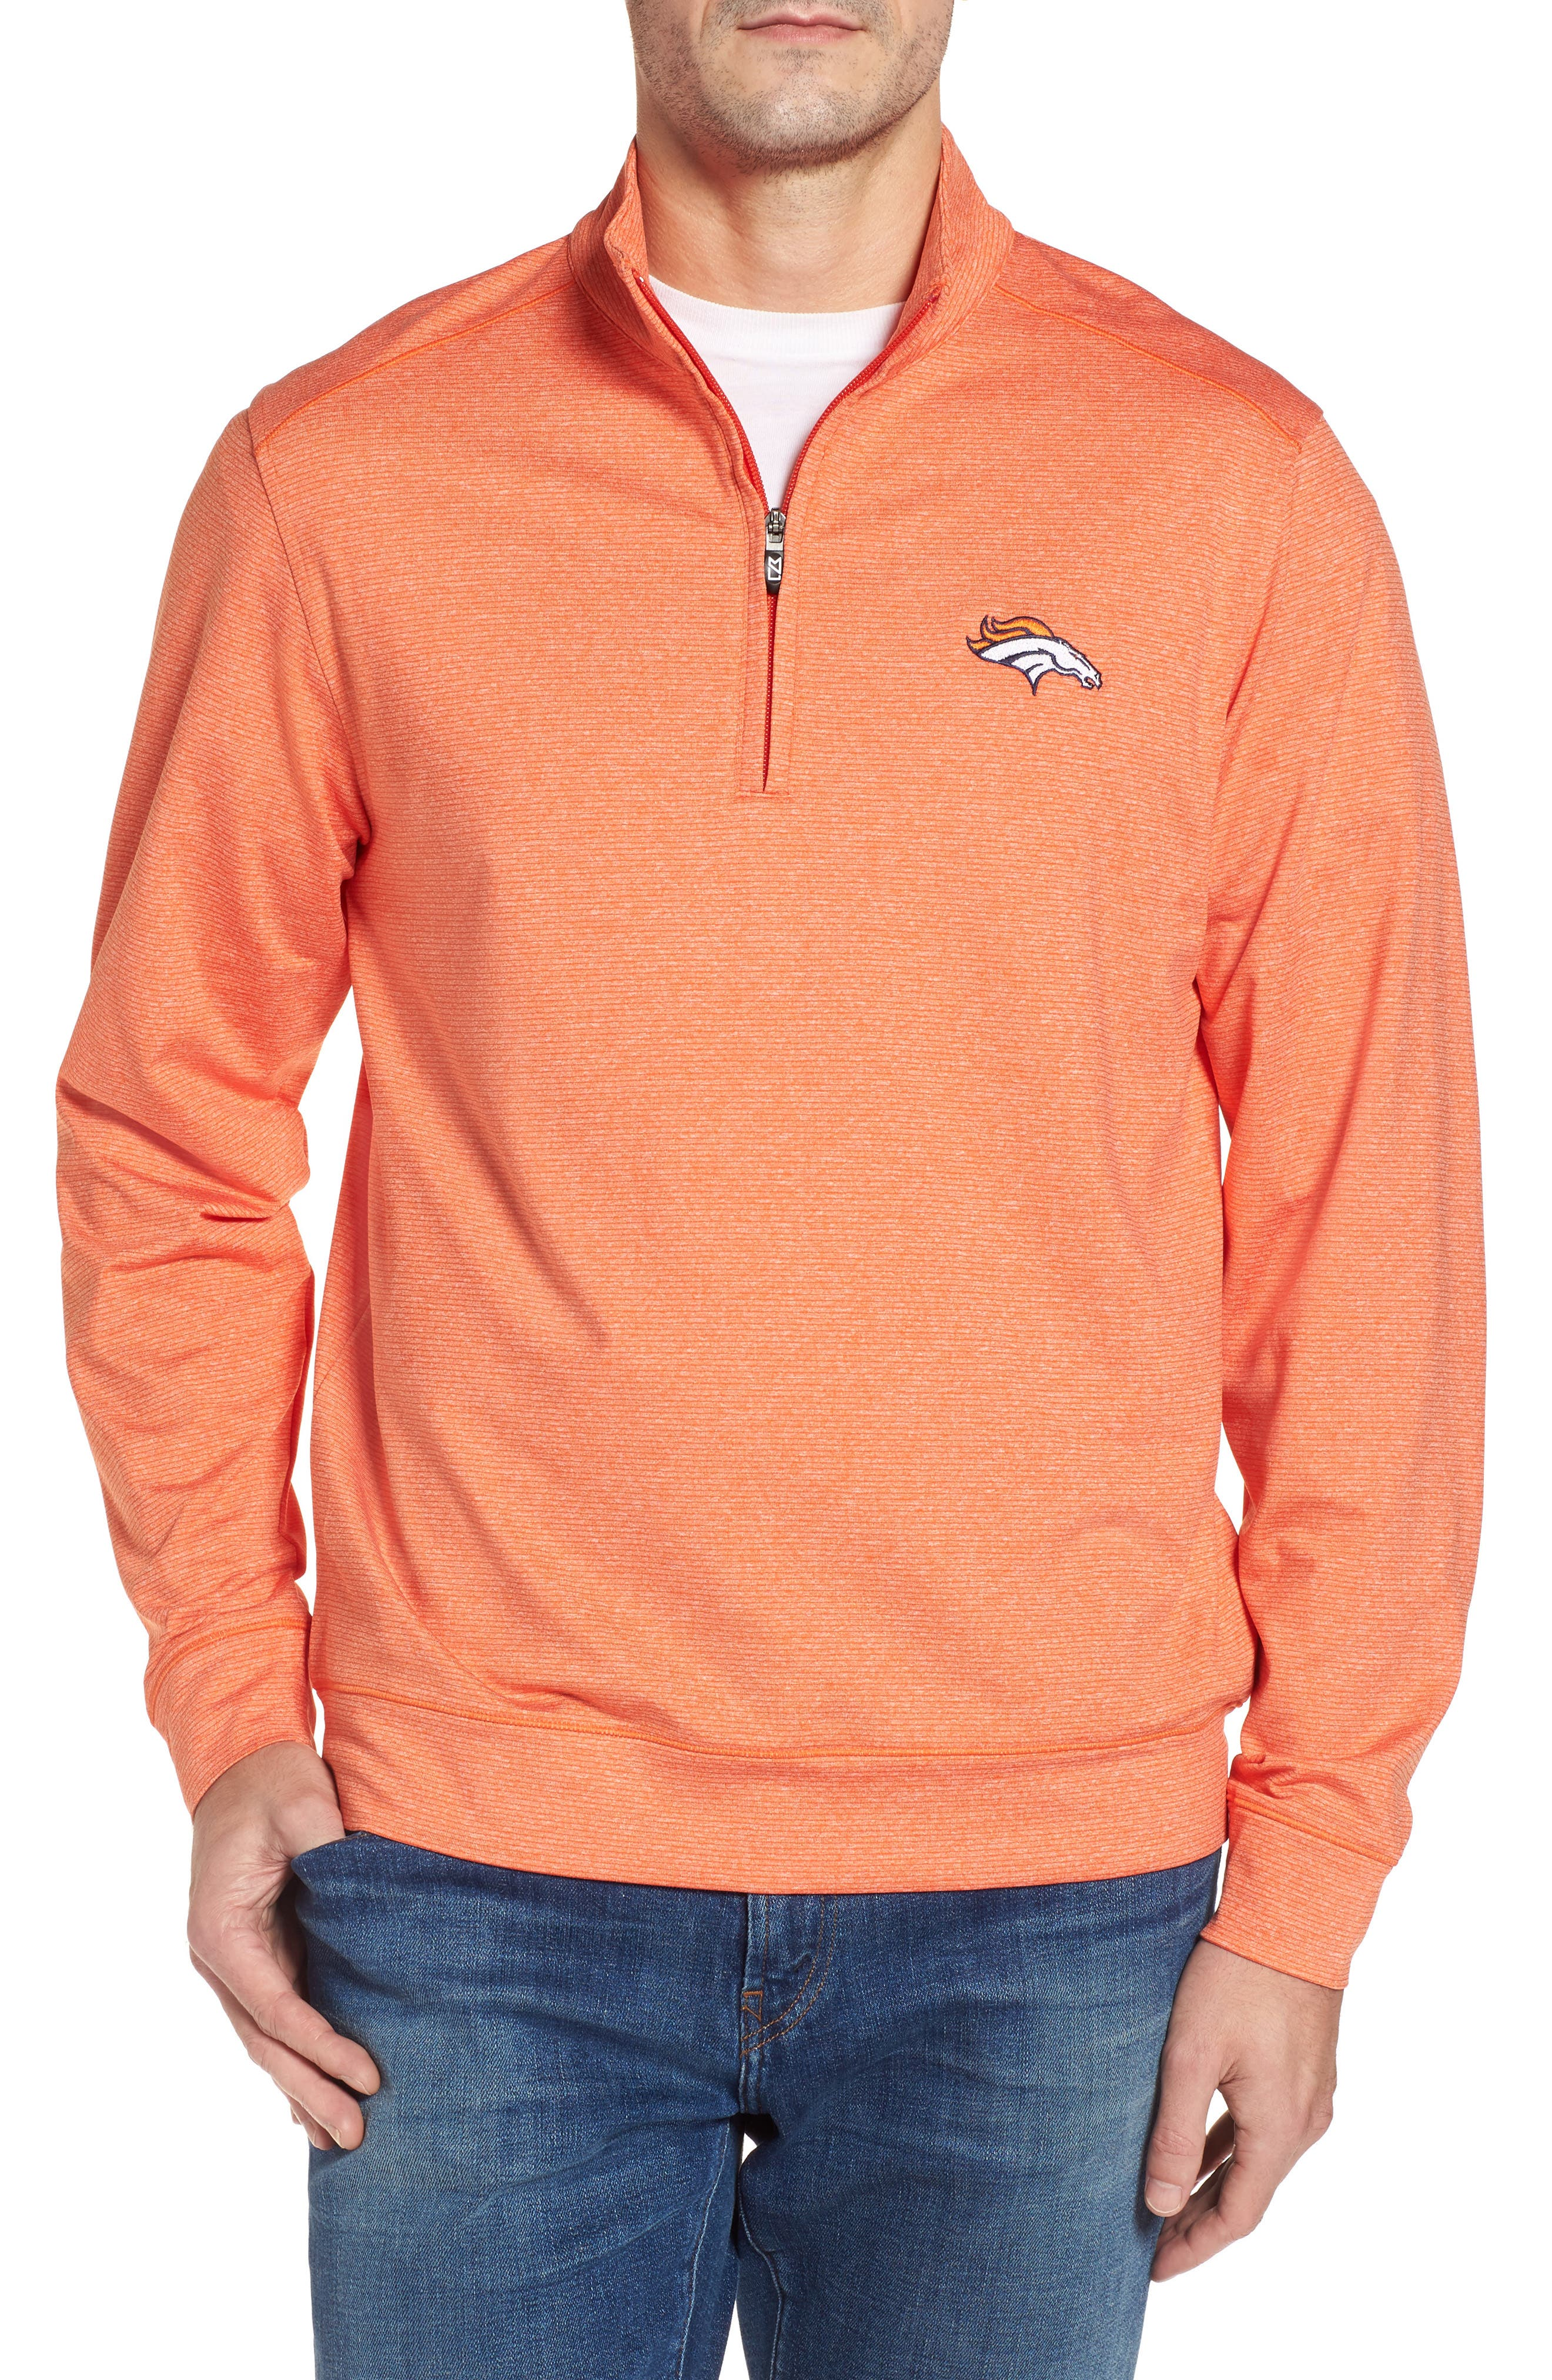 Shoreline - Denver Broncos Half Zip Pullover,                             Main thumbnail 1, color,                             816